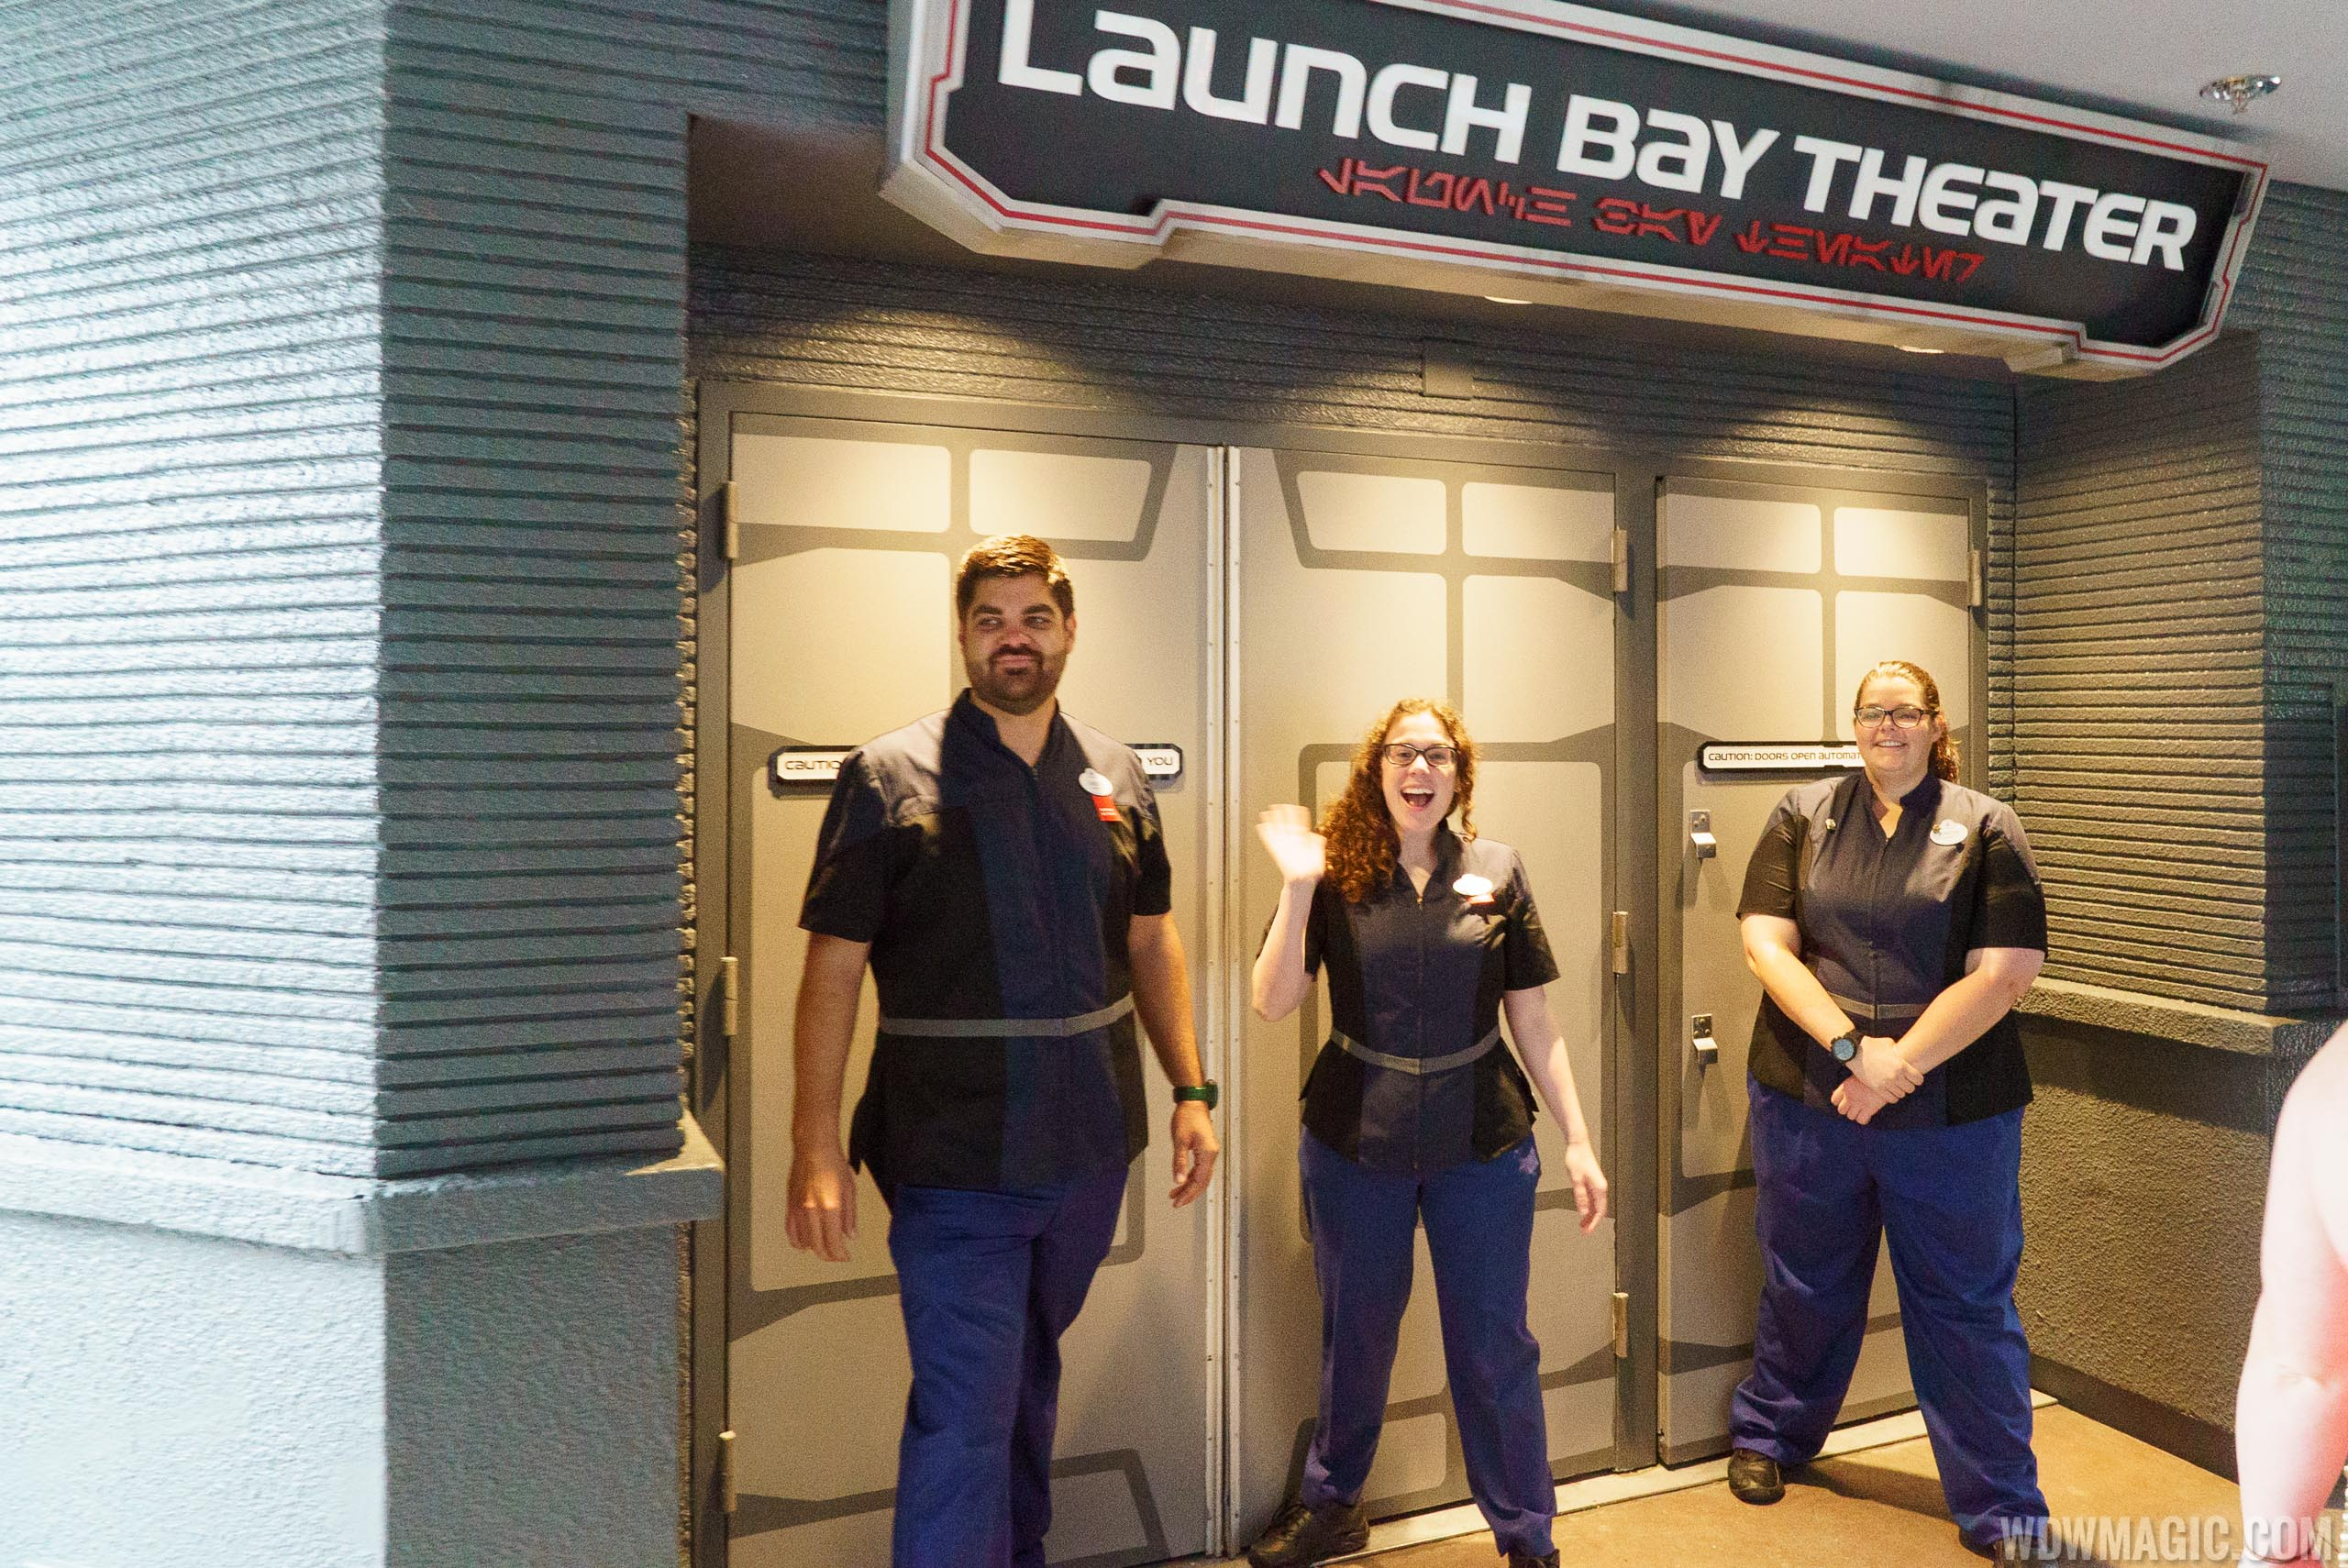 Star Wars Launch Bay - Launch Bay Theater